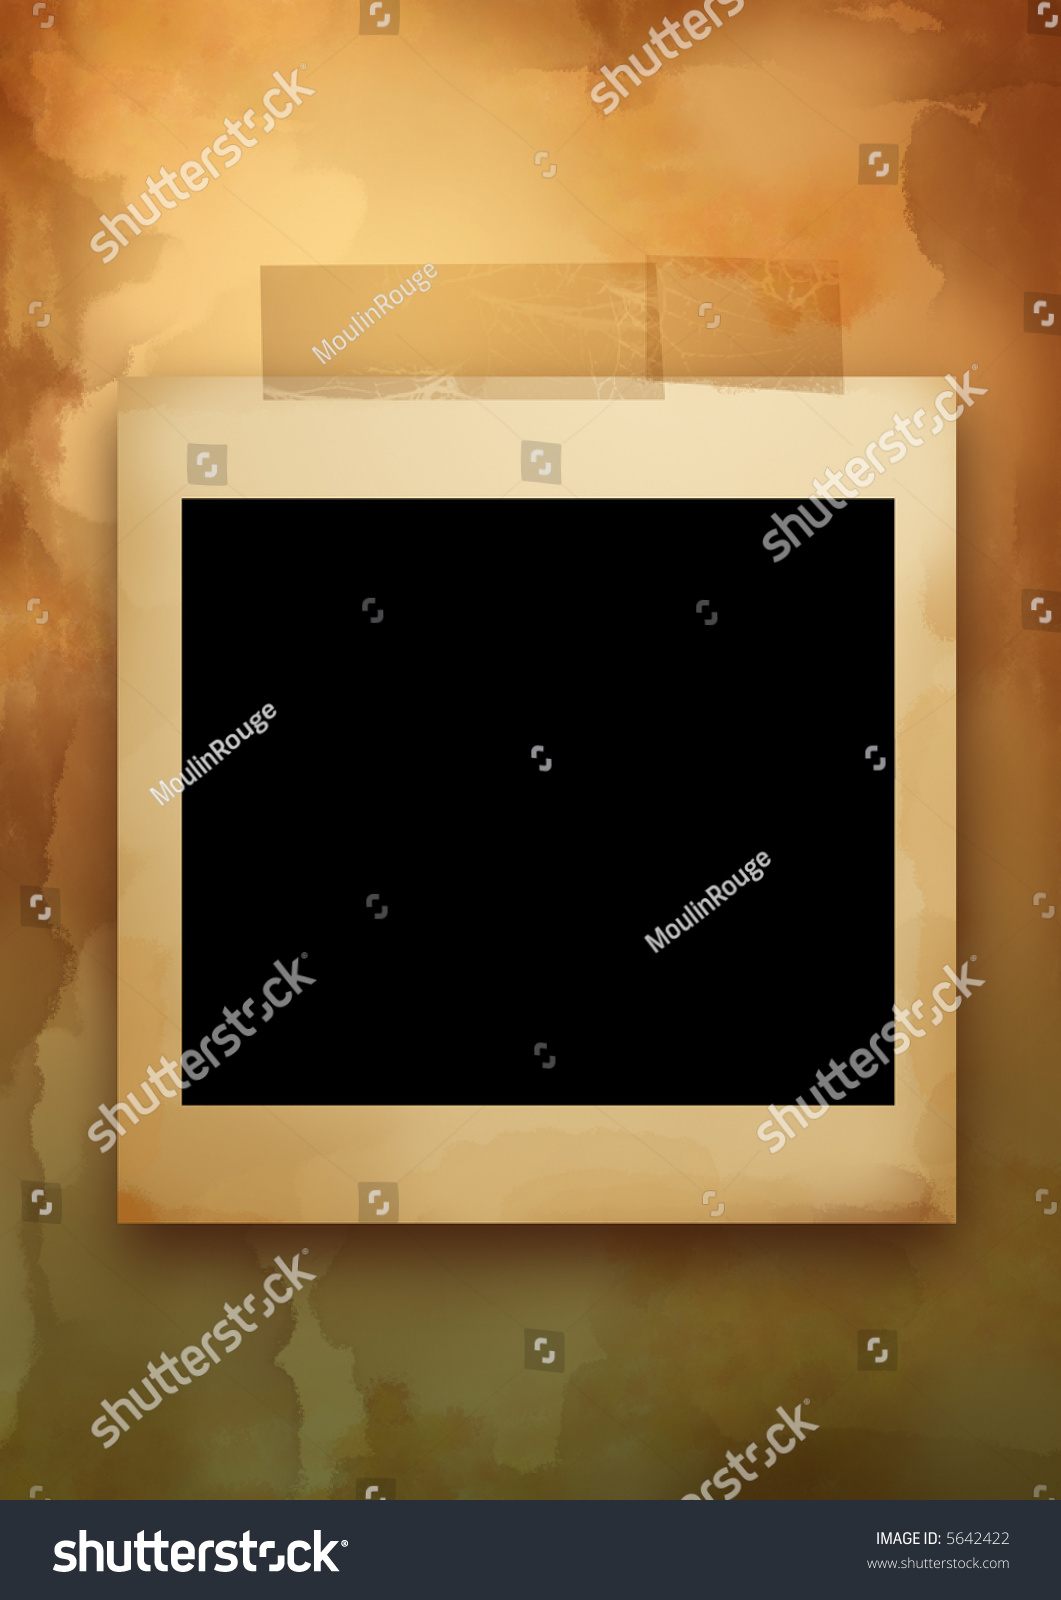 Old Paper Papyrus Empty Frame Stock Illustration 5642422 - Shutterstock